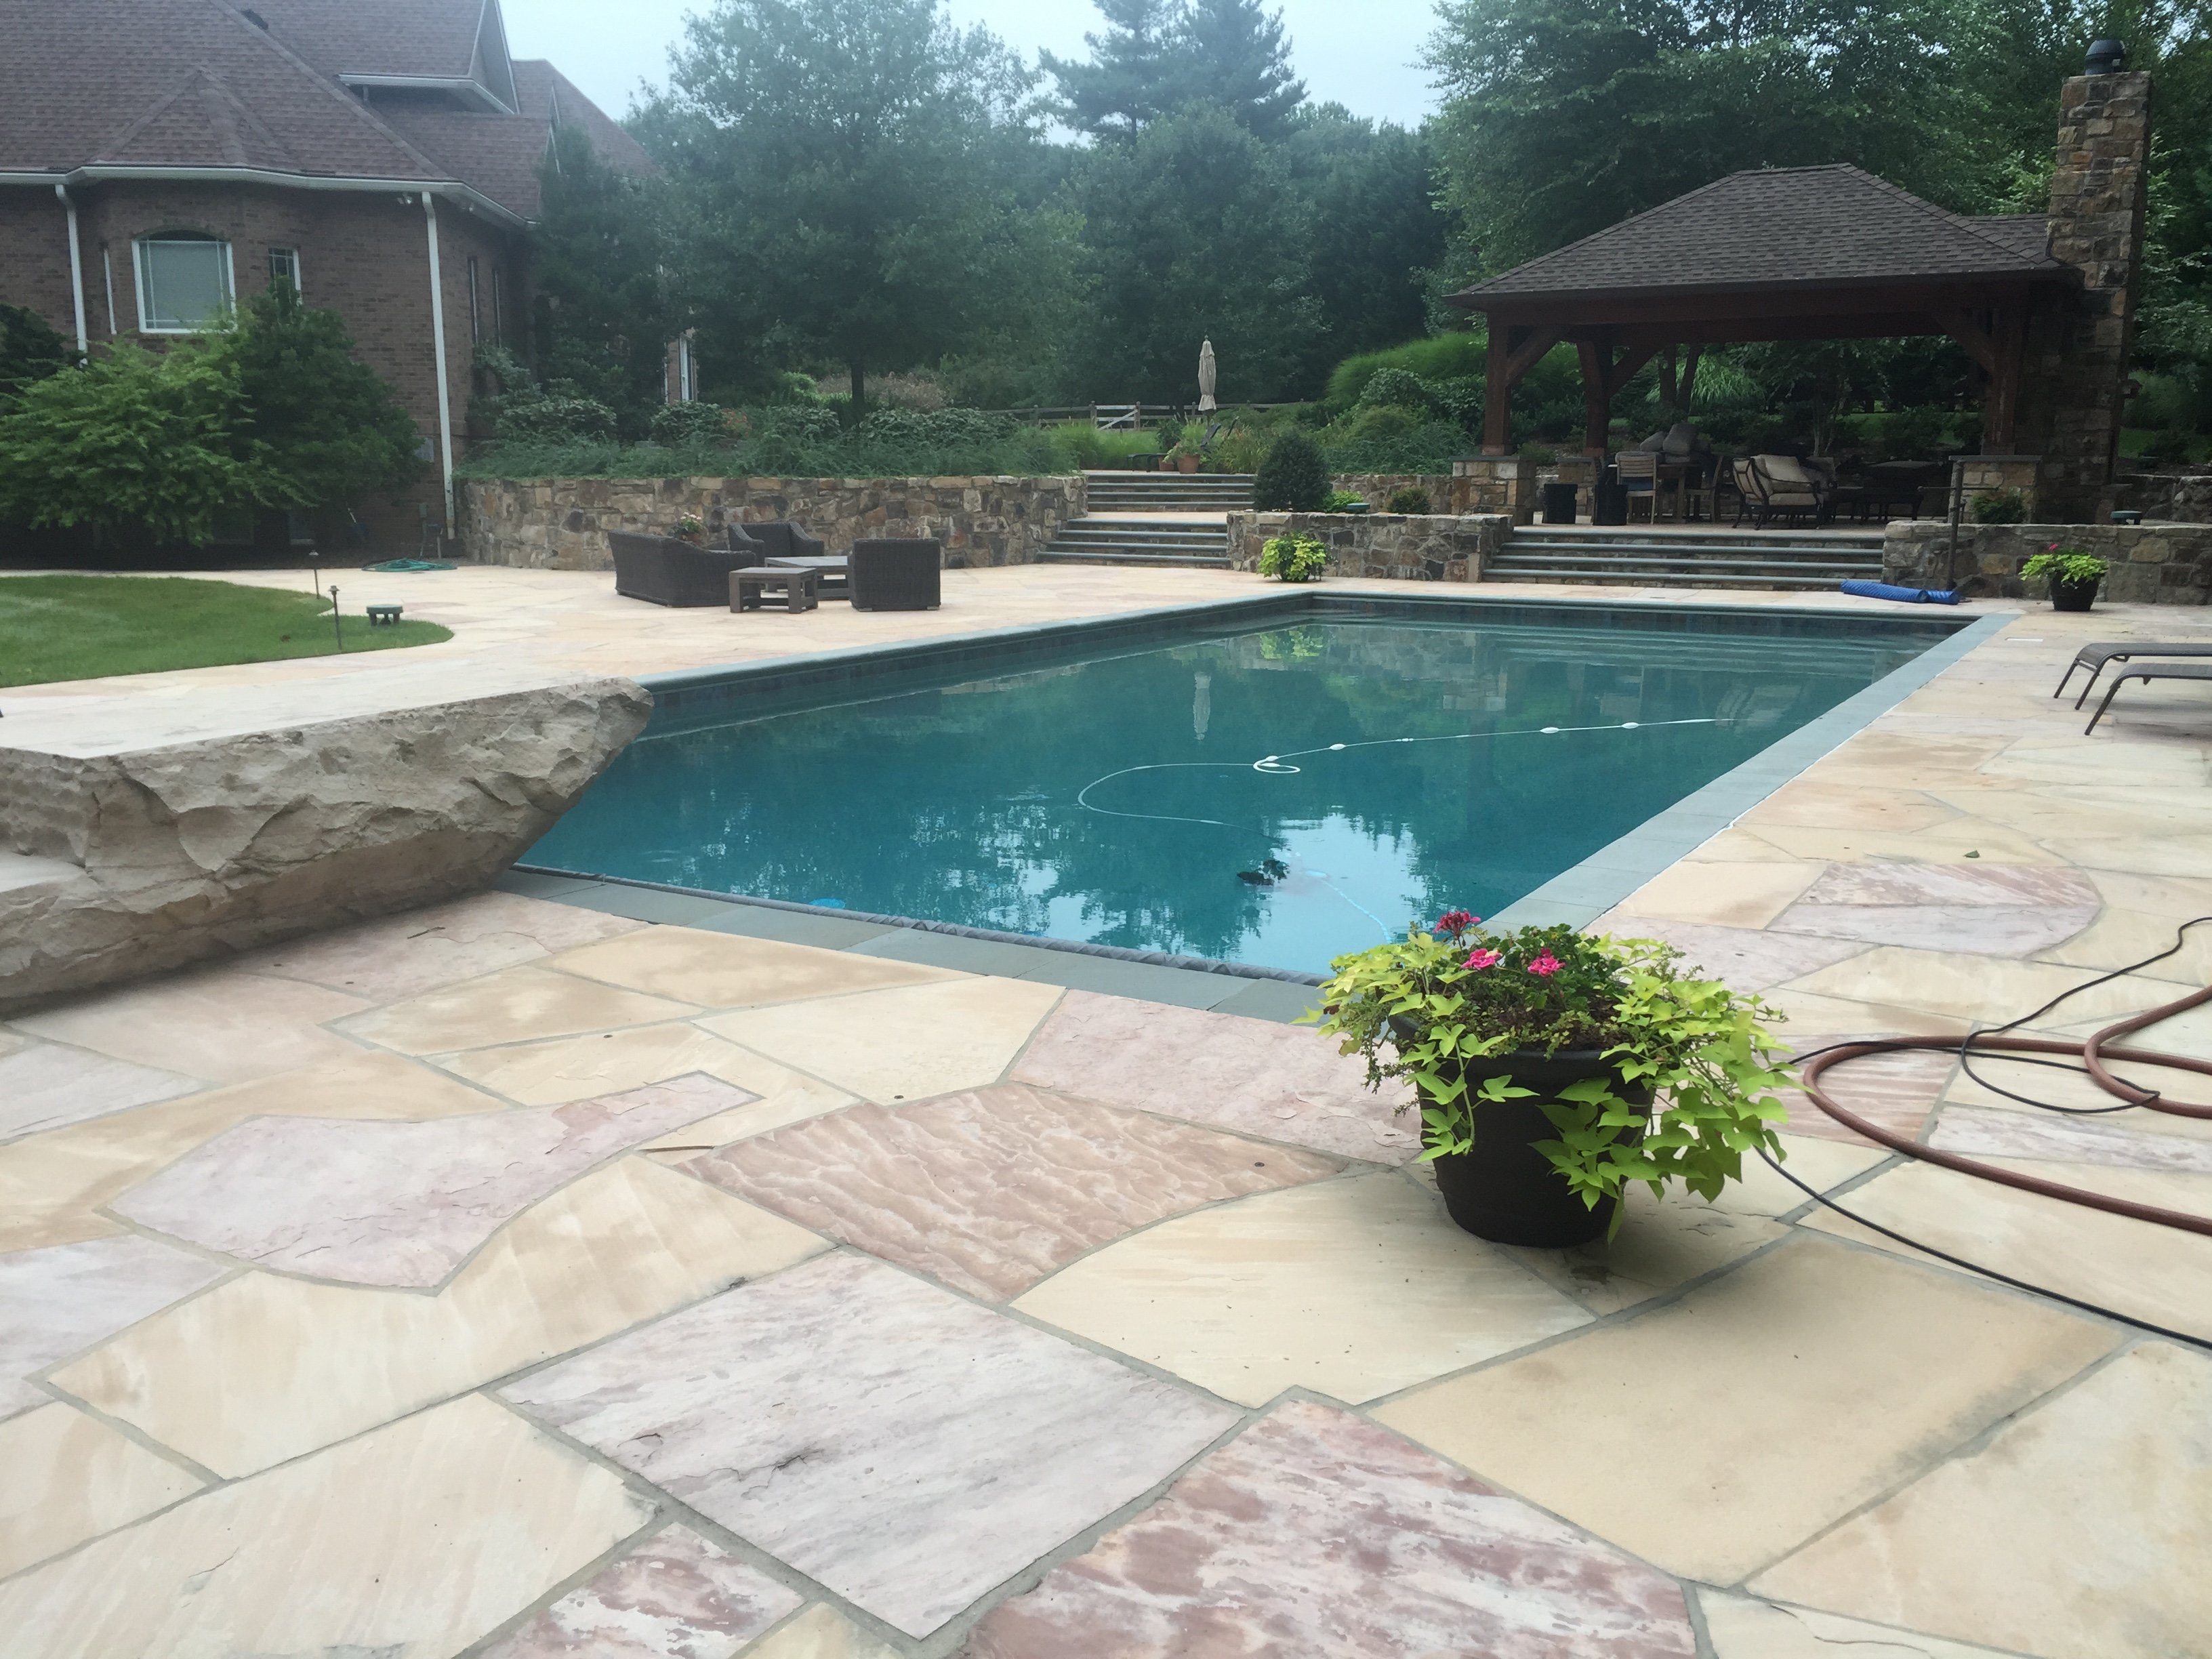 2016 Pool Design Trends To Inspire Your New Howard County Pool